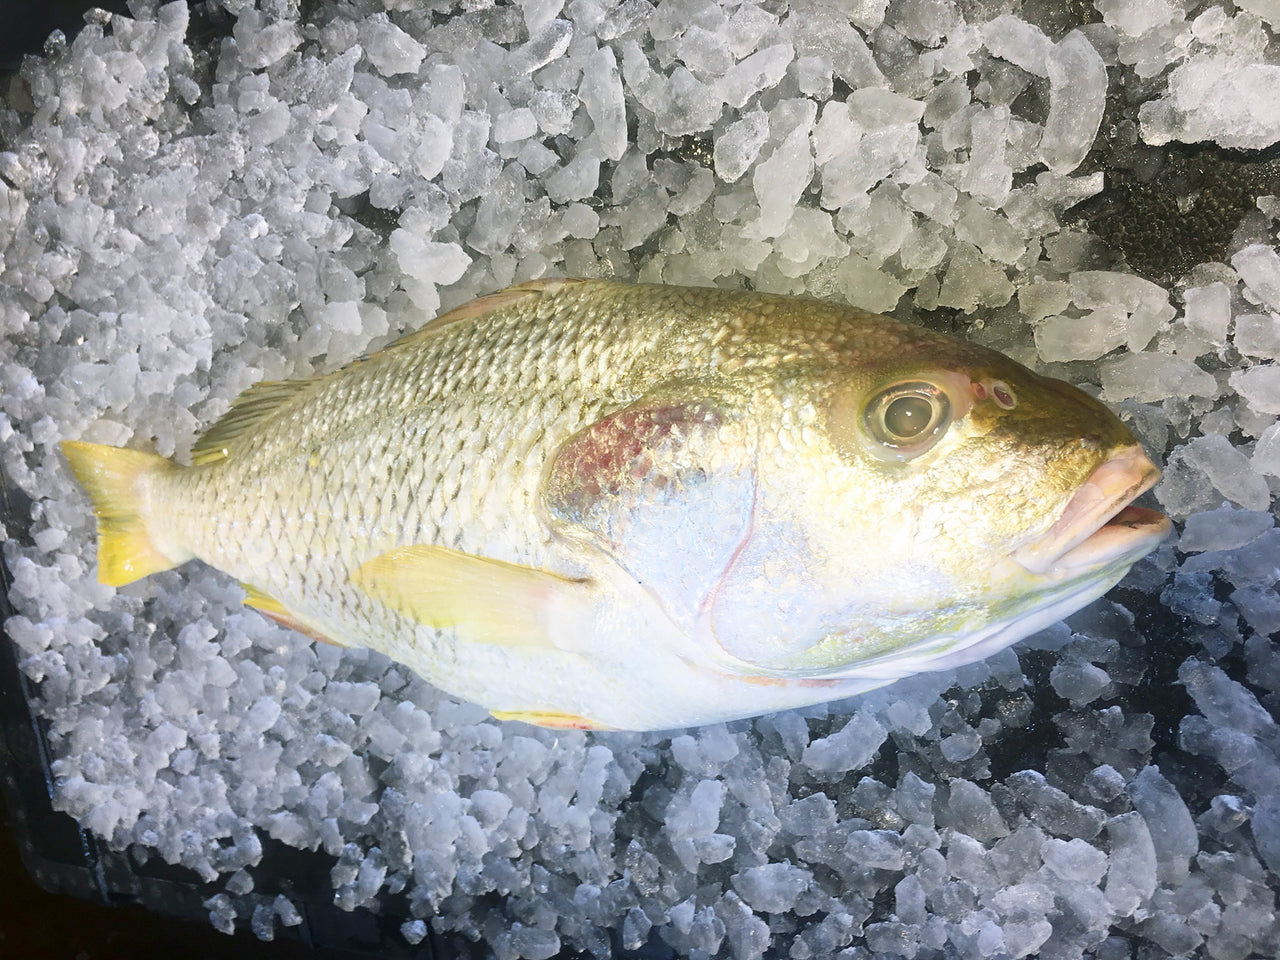 Dishthefish Wild Caught Longhead Grunt 石鲈鱼 fresh fish third generation fishmonger singapore fresh seafood supplier singapore